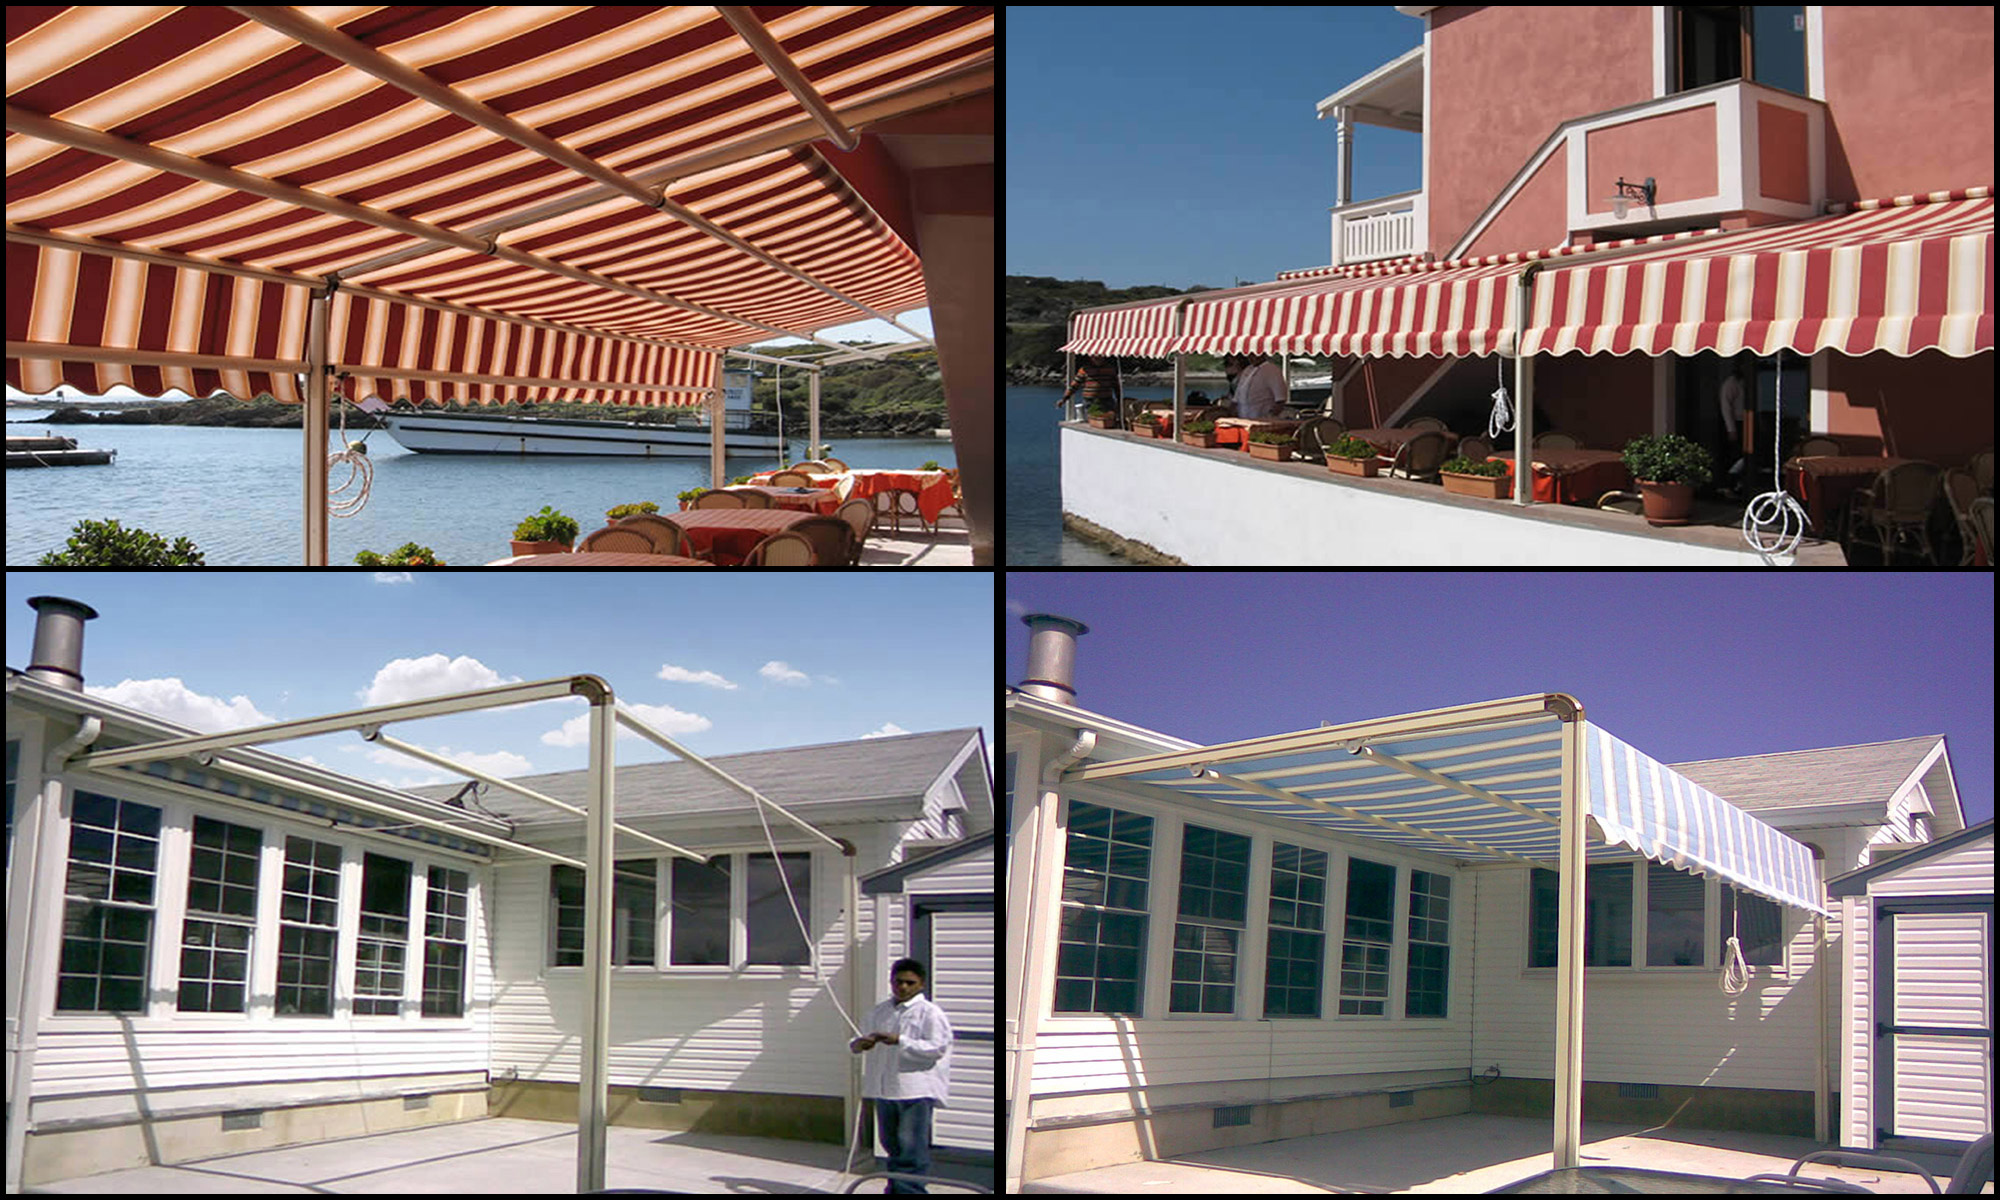 brooklyn estimate up pm carports ny hours sunday days retractable accesskeyid week at your disposition available am alloworigin monday awning a ave free awnings roll home classon estimates